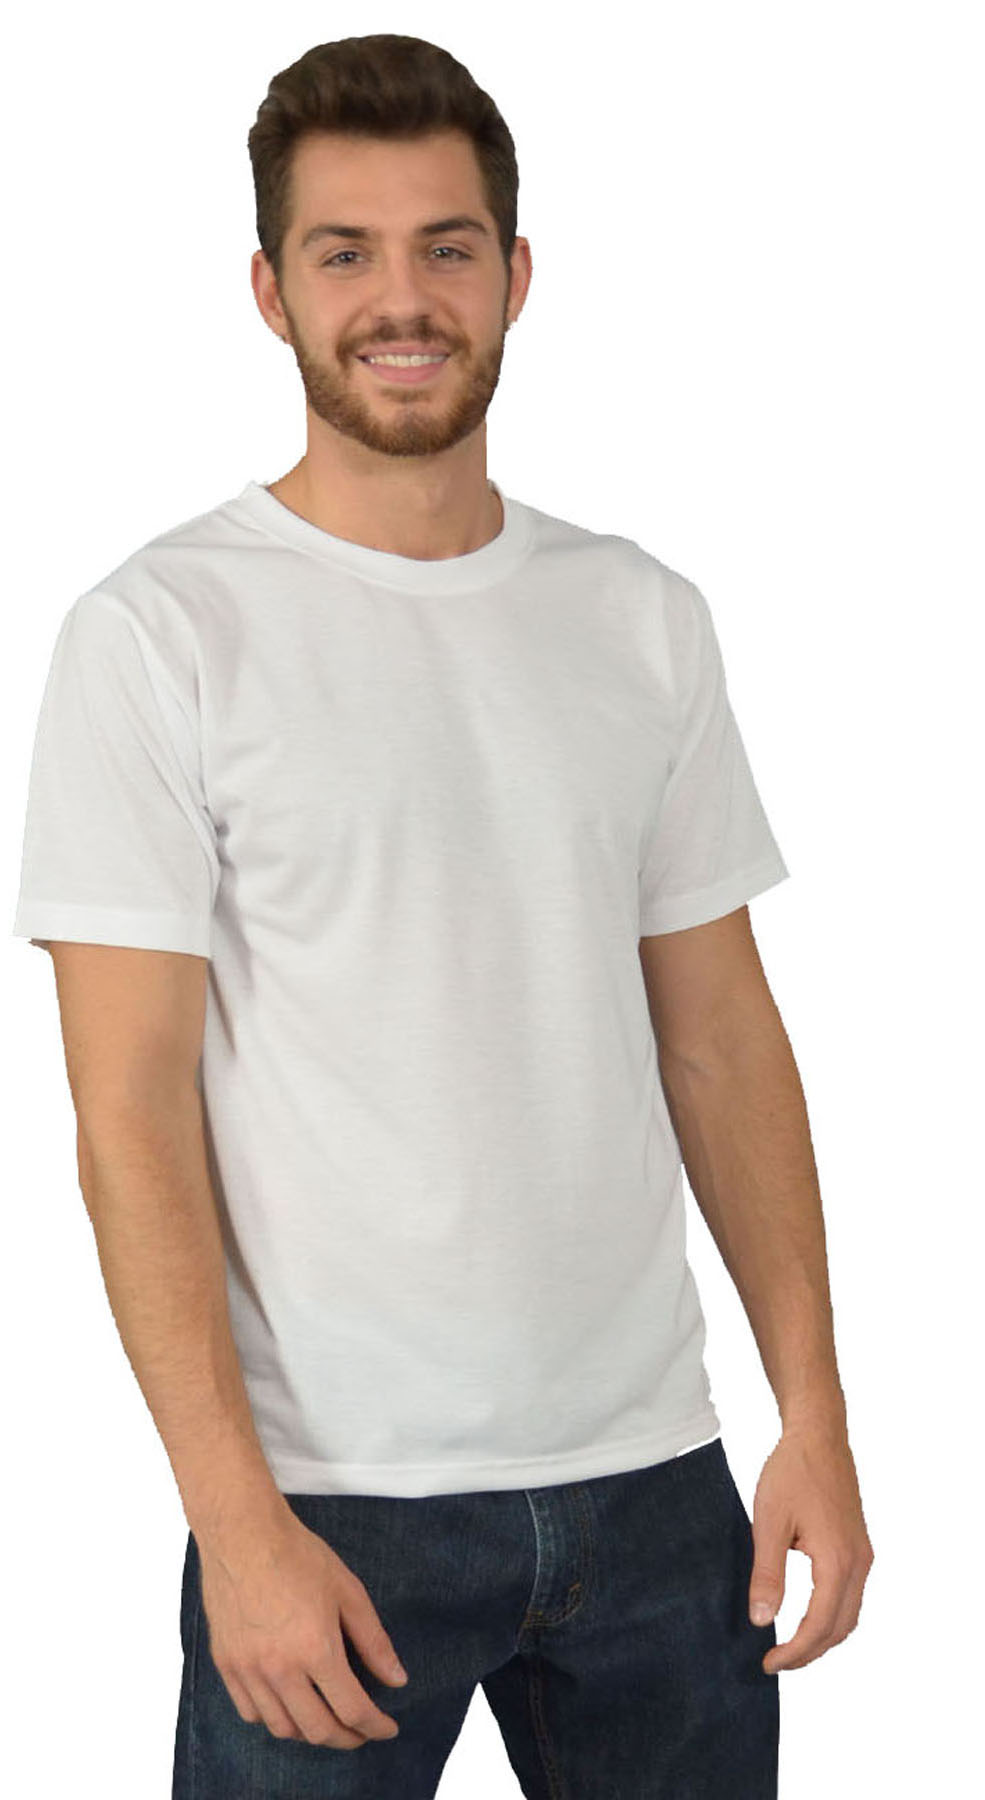 Monag 843001 - Organic Mens Short Sleeve Crew Neck Tee